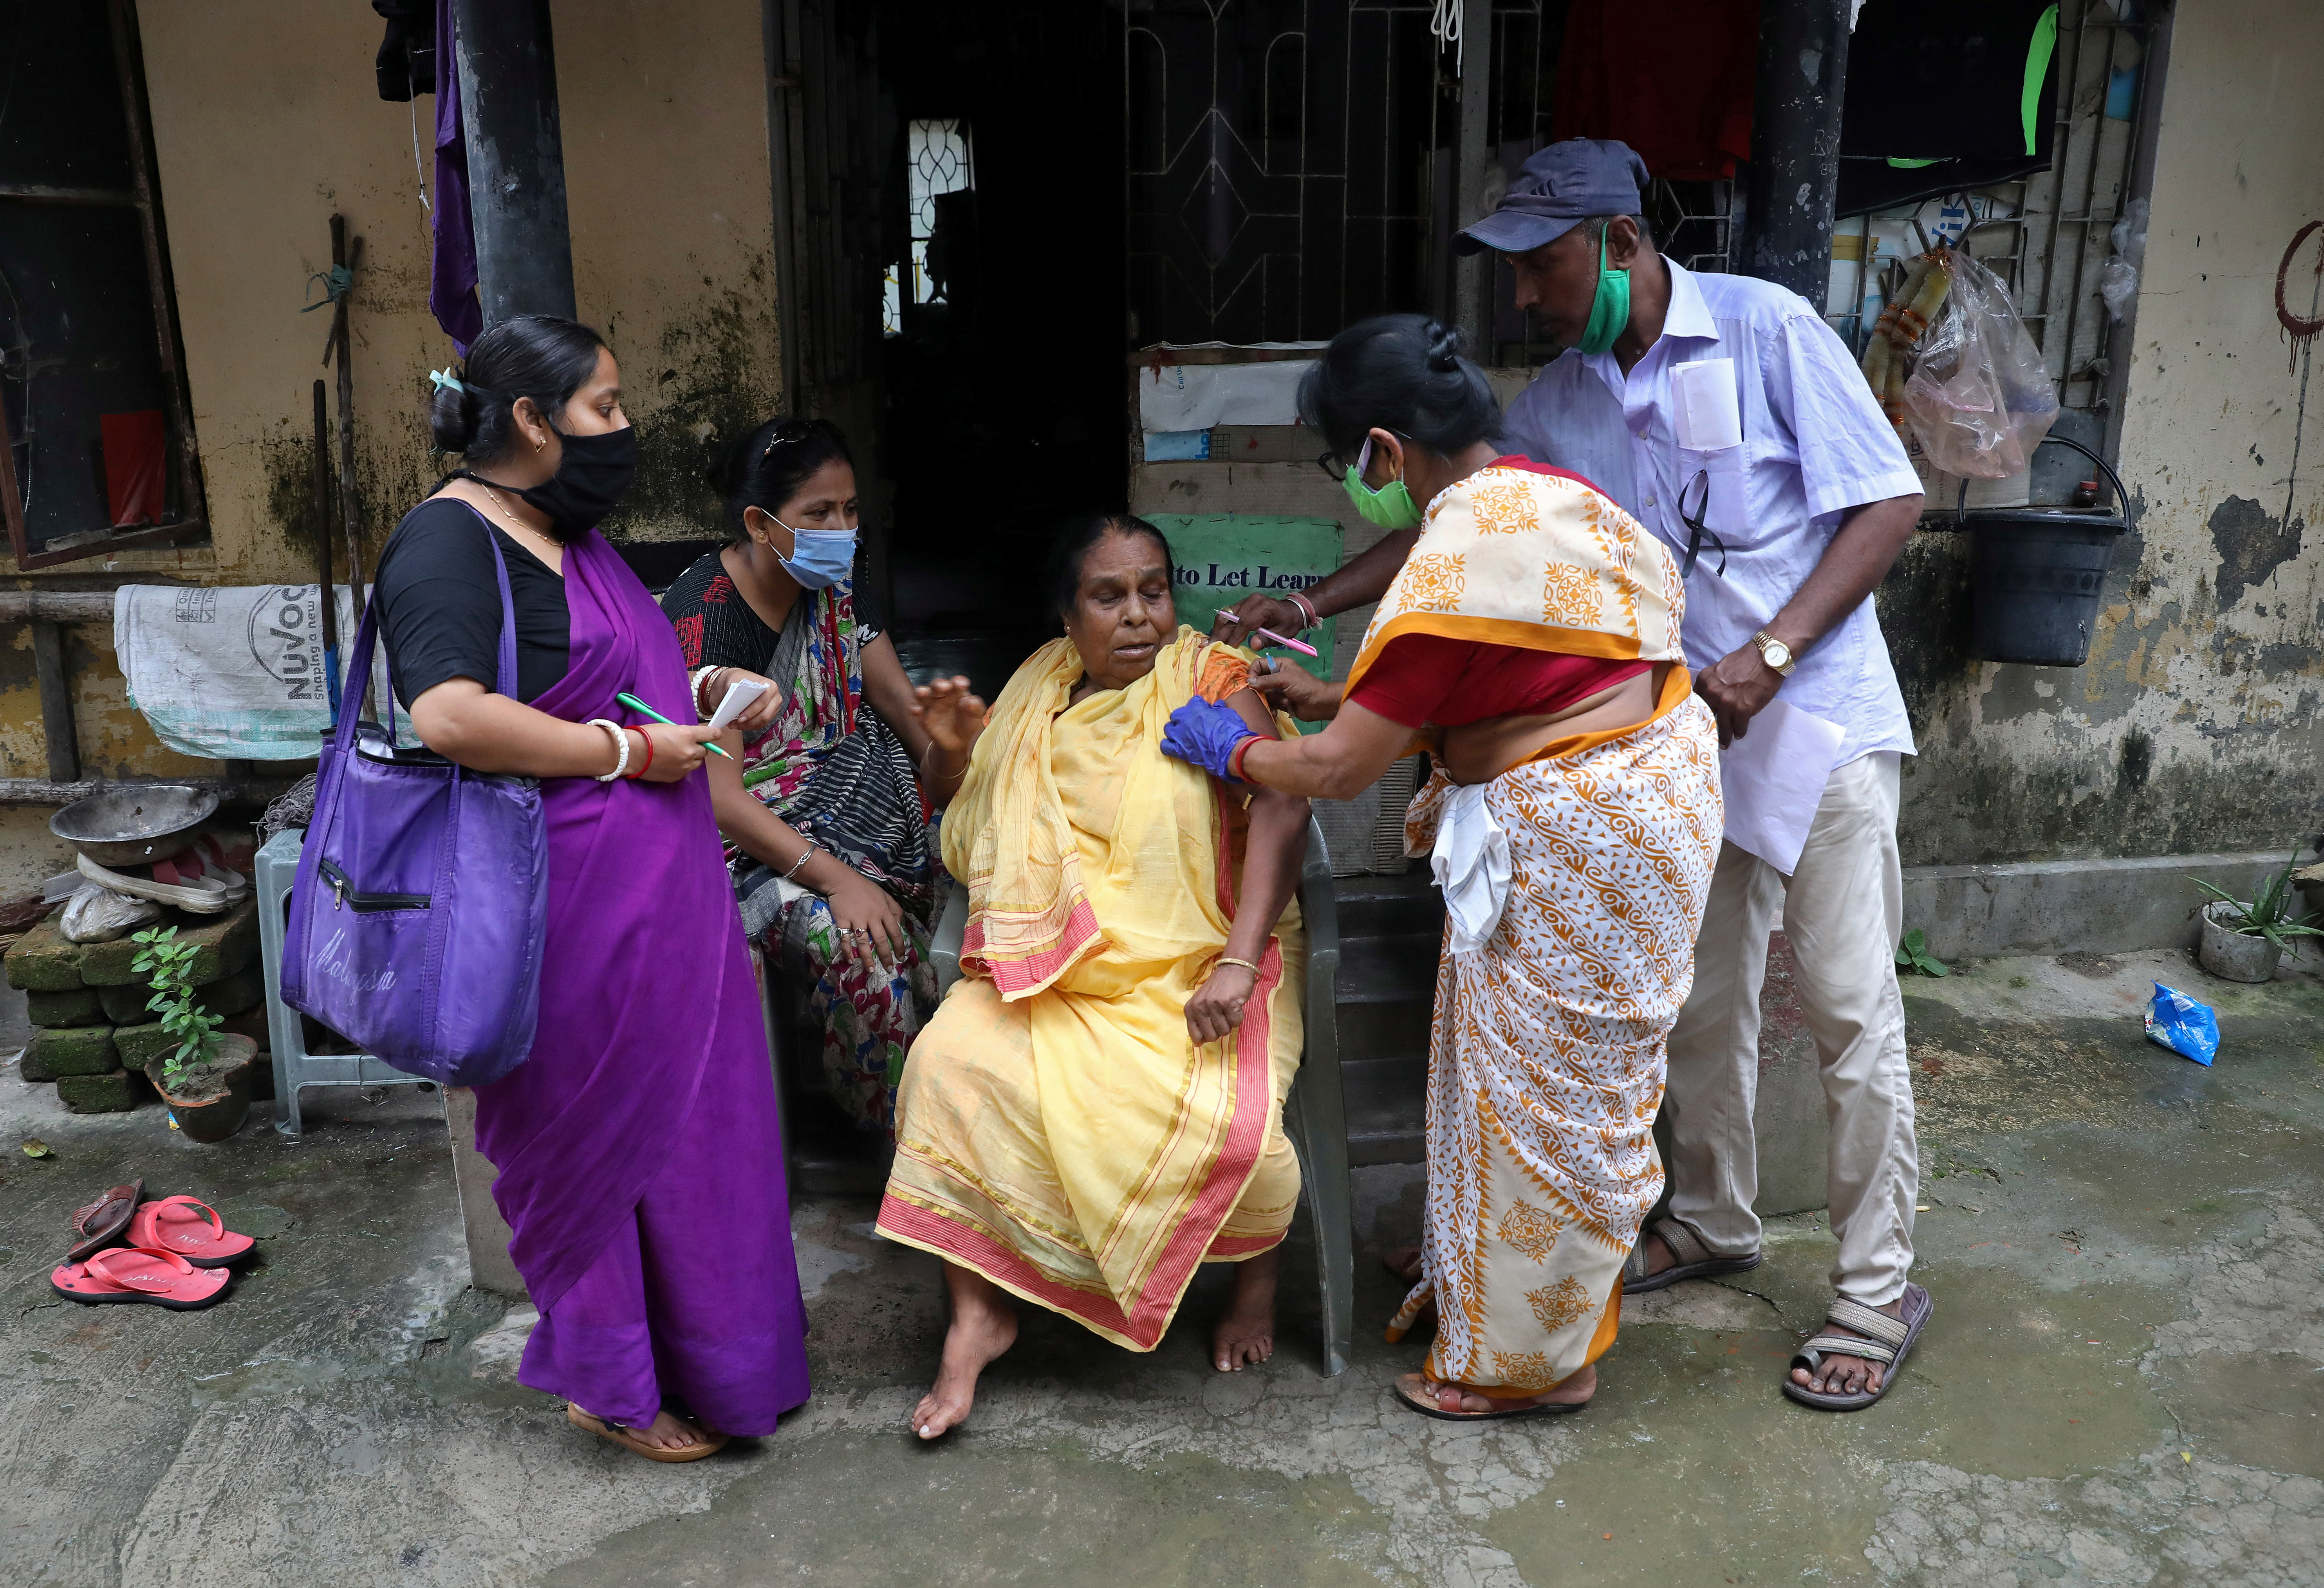 Rekha Ghosh, 64, reacts a she receives a dose of COVISHIELD, a coronavirus disease vaccine manufactured by Serum Institute of India, outside her house during a door-to-door vaccination drive in Kolkata, India, August 12, 2021. REUTERS/Rupak De Chowdhuri